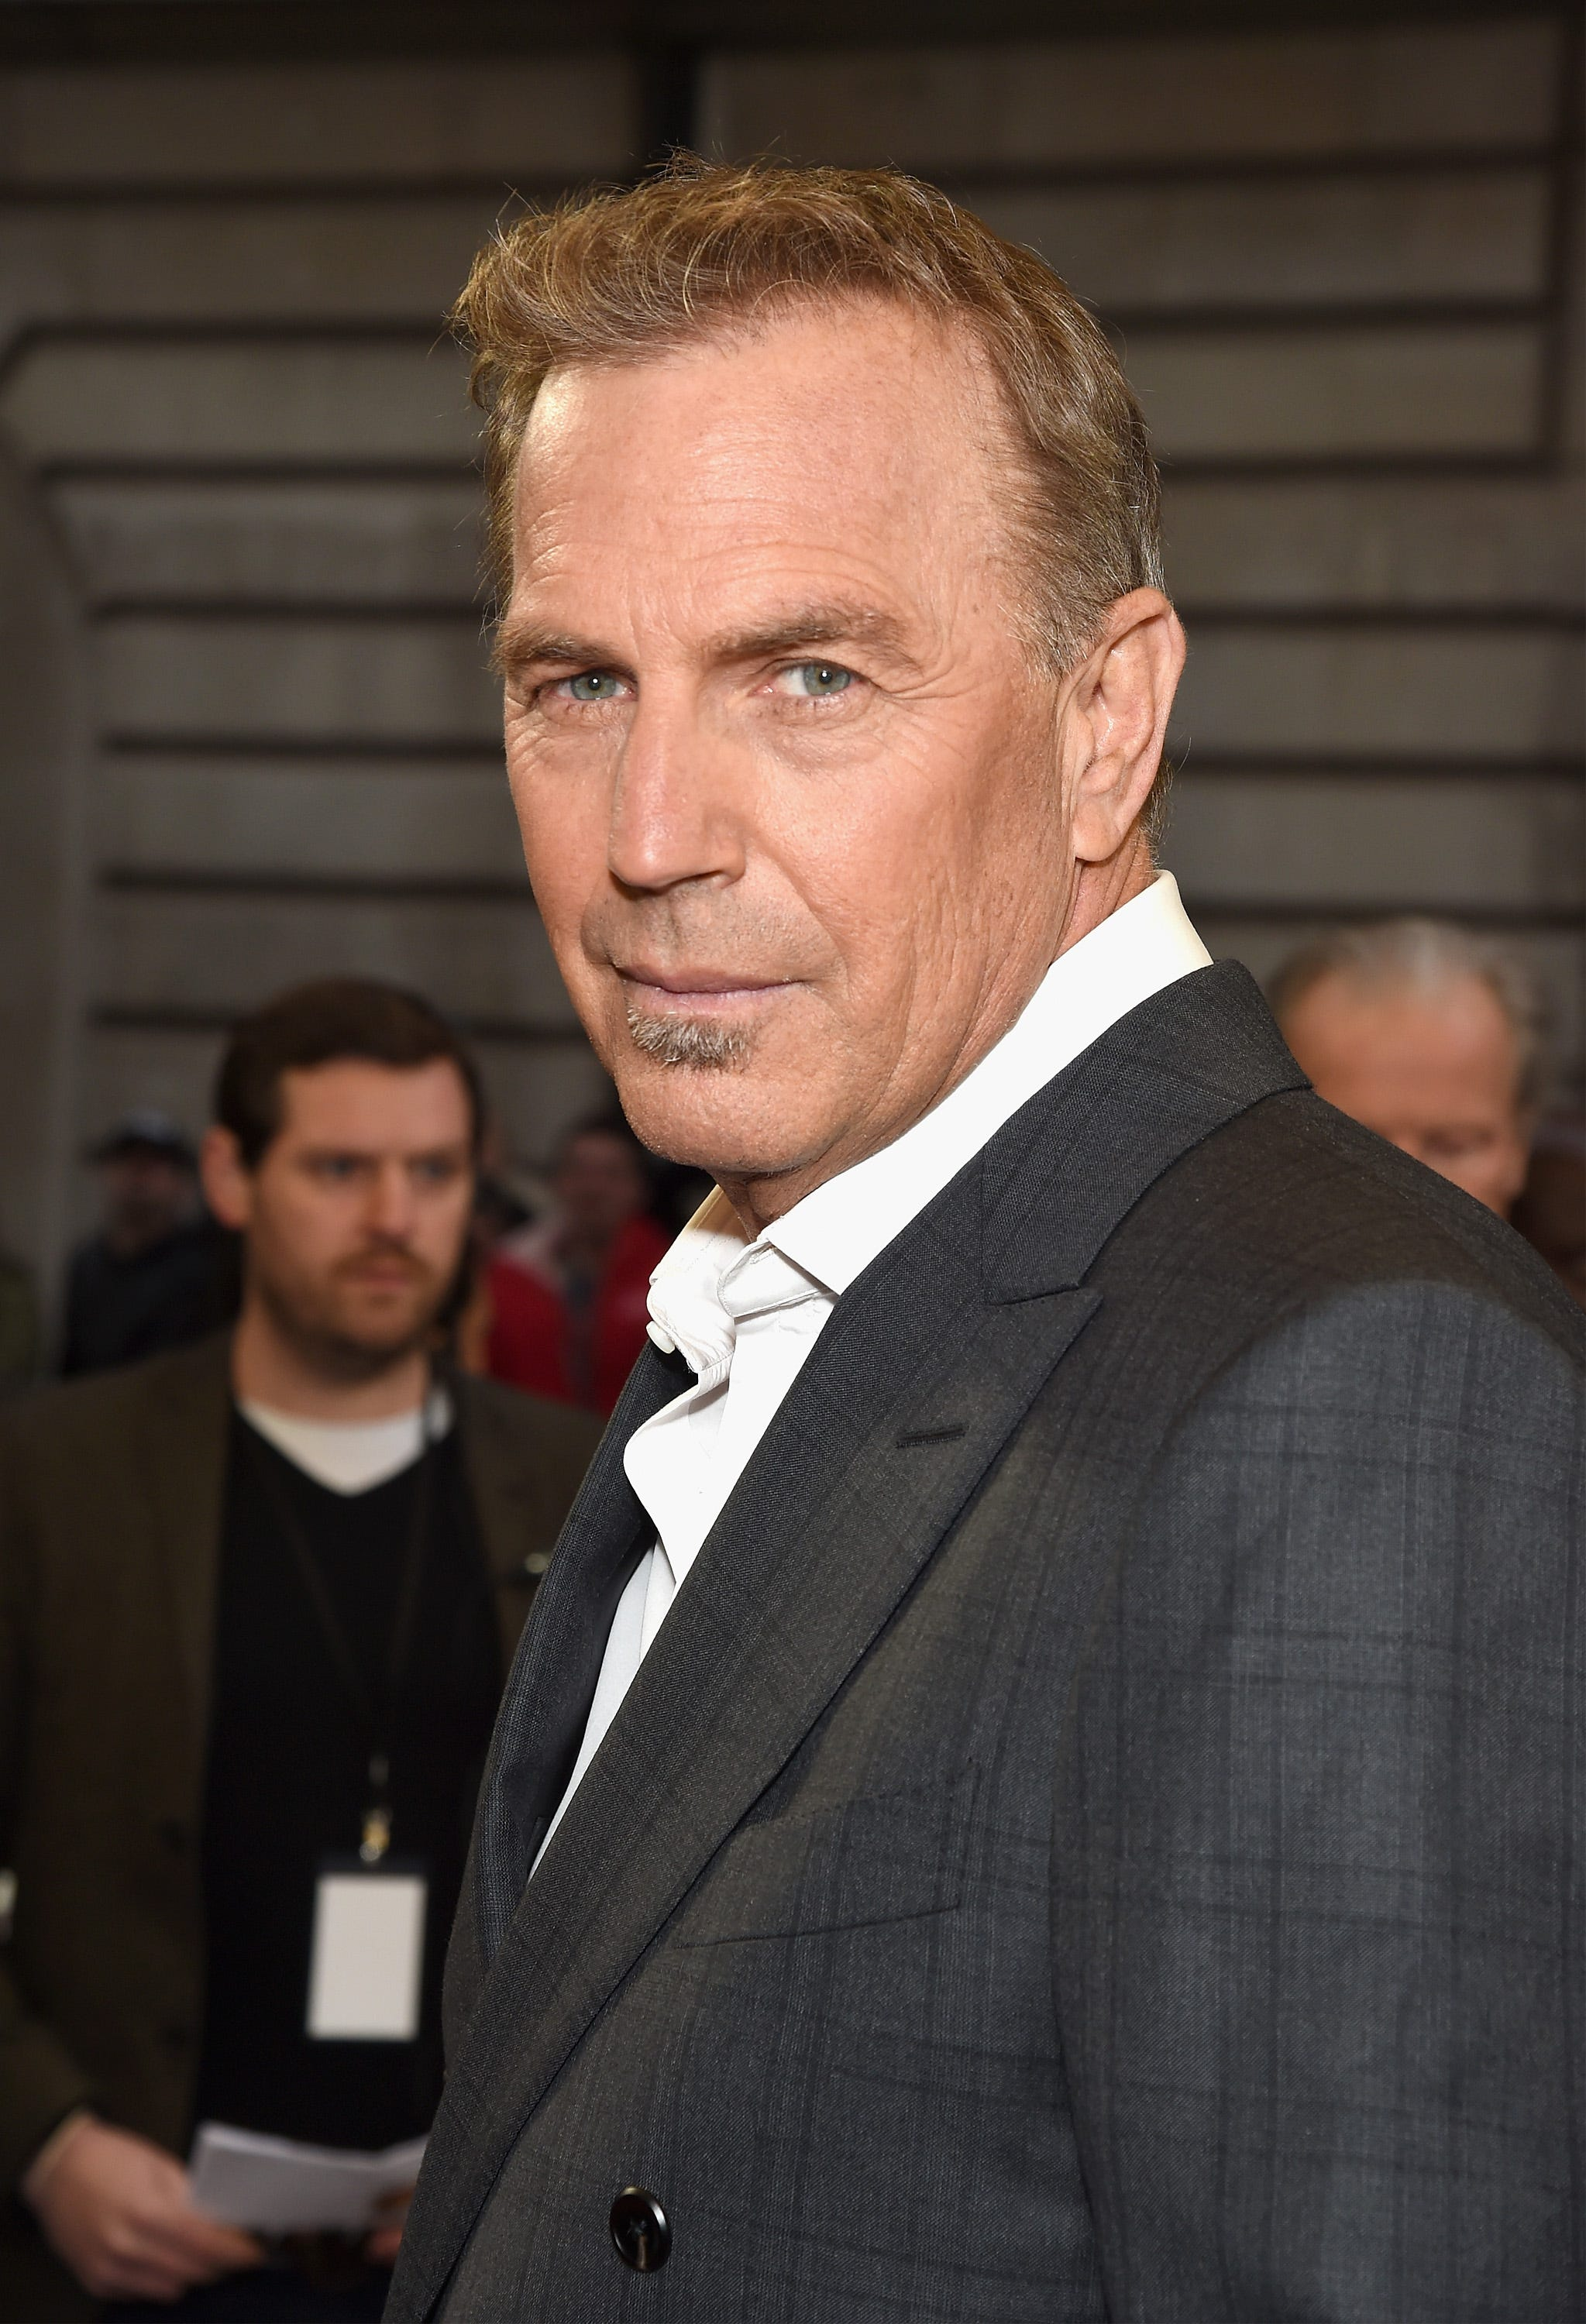 Cock monster white kevin costner — photo 9